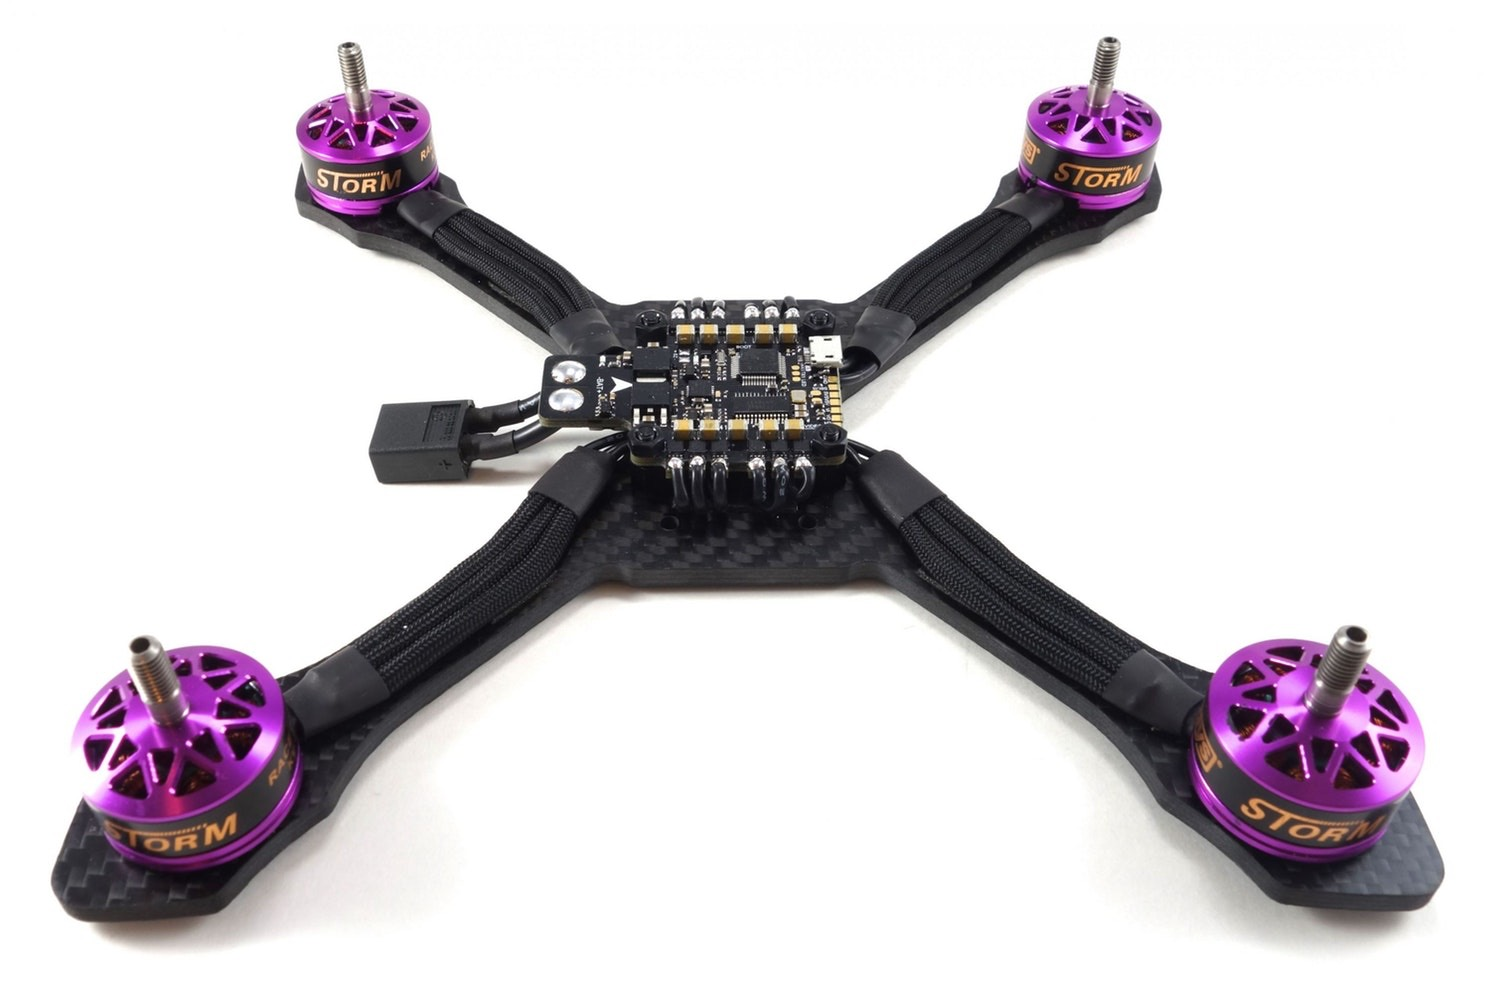 Building racing drones made me a better designer